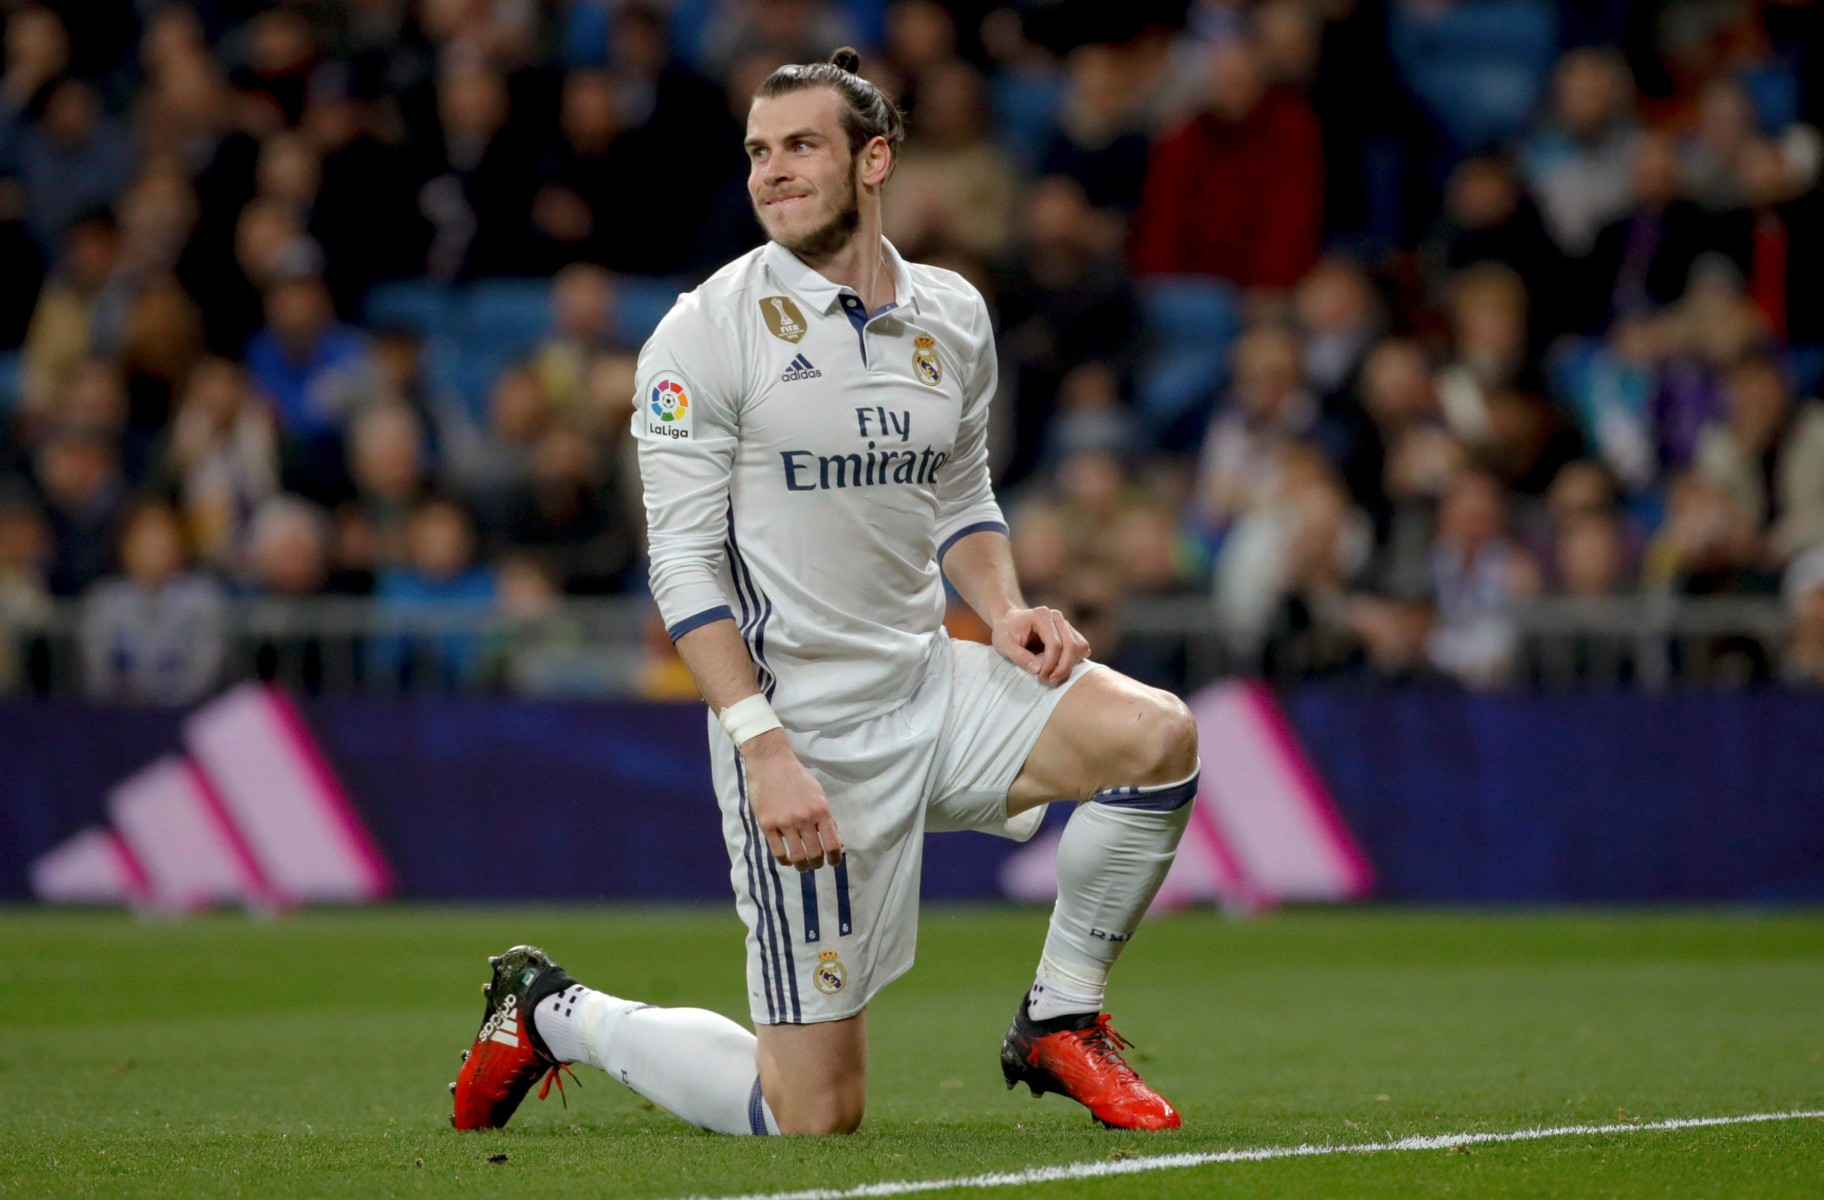 Real Madrid star Gareth Bale is on the left wing